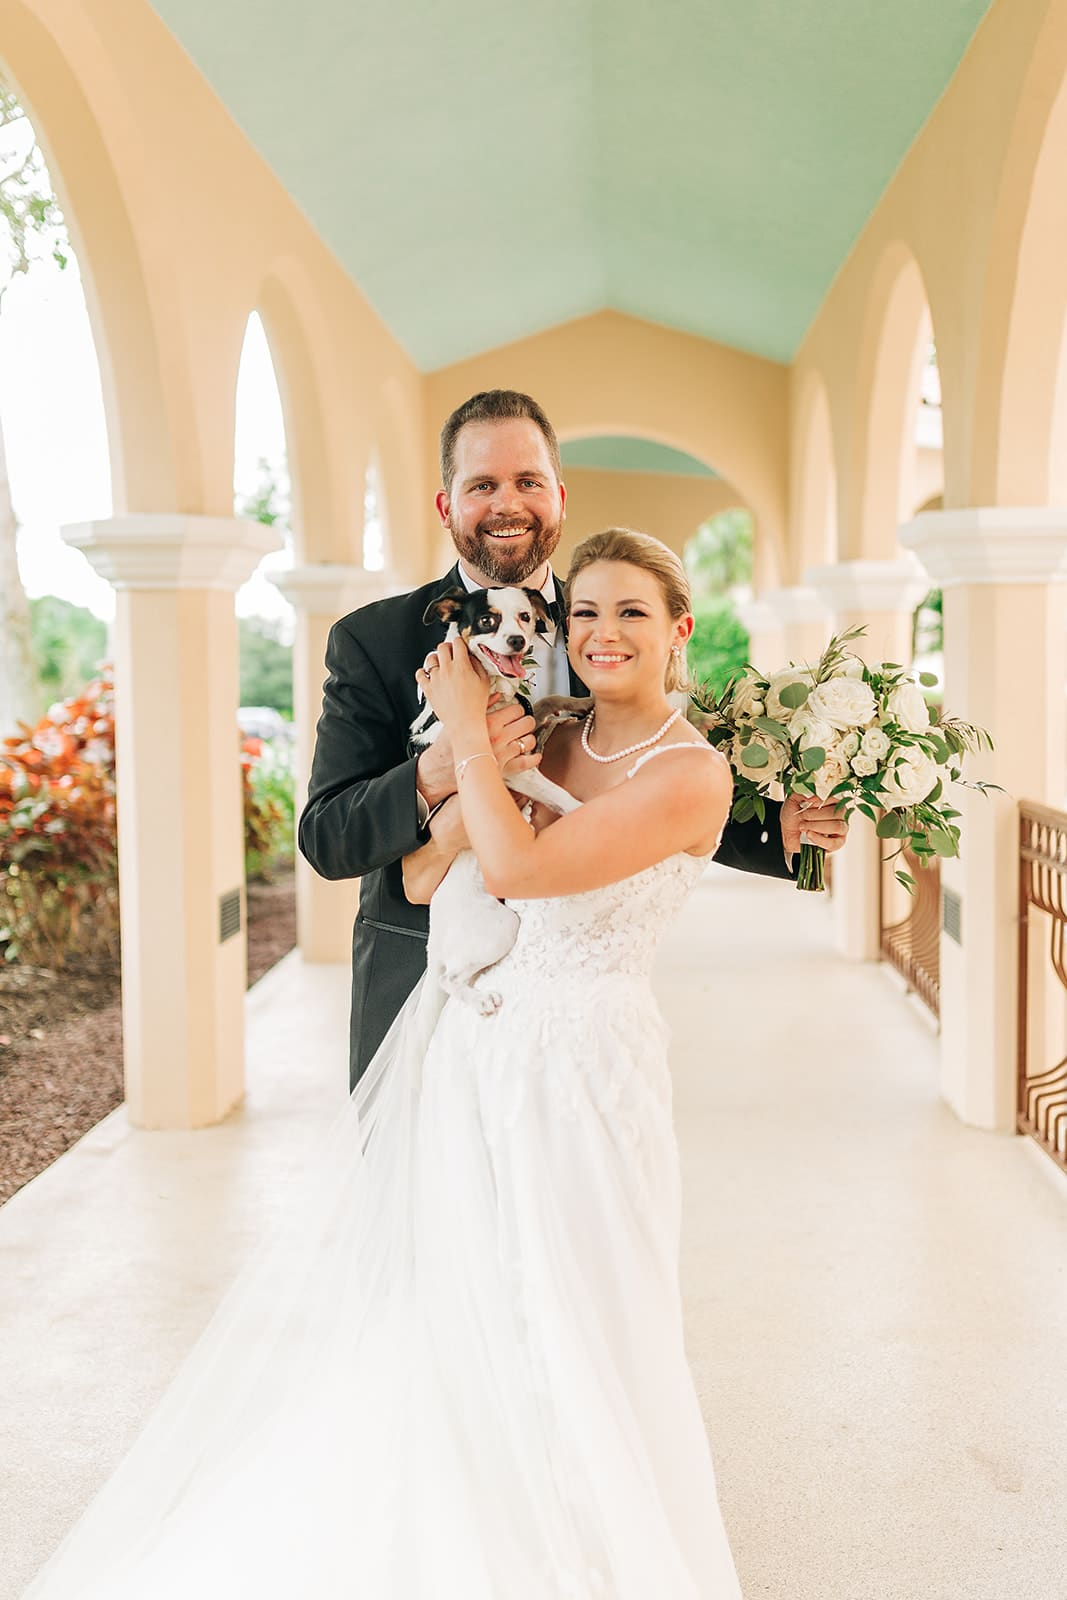 Bride and Groom with pet dog.